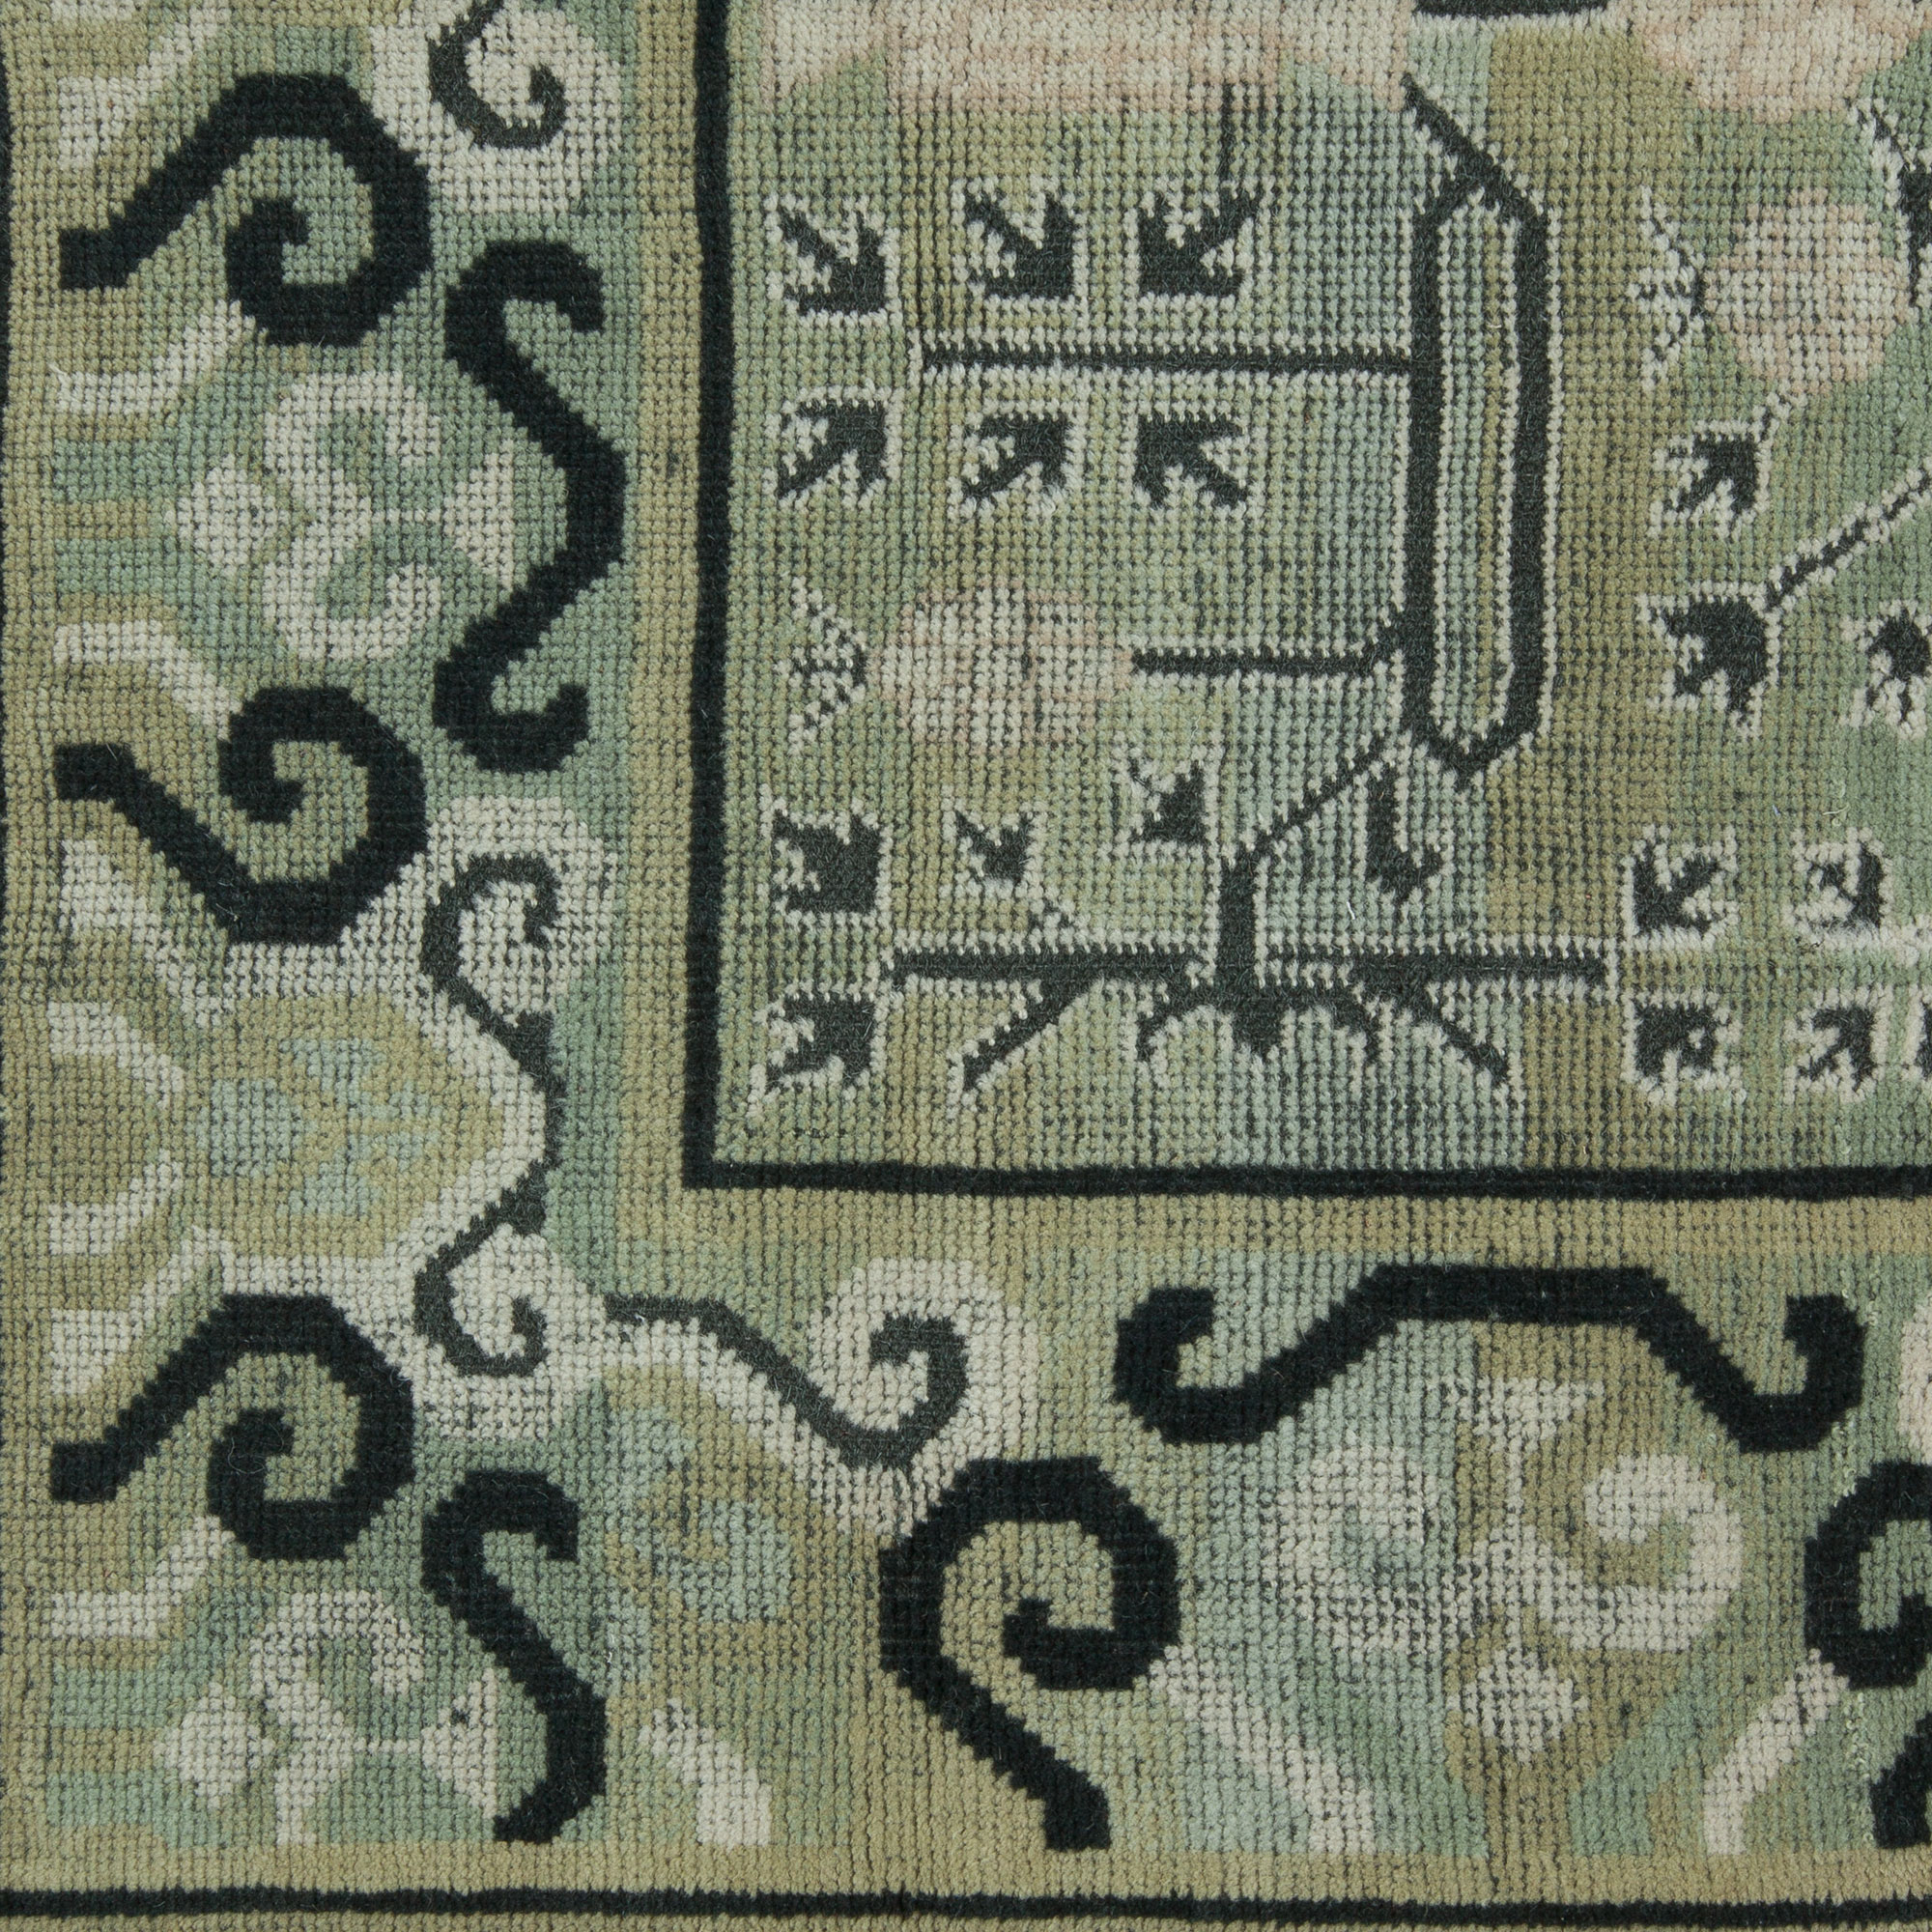 Traditional Rug Design S11441 S11441